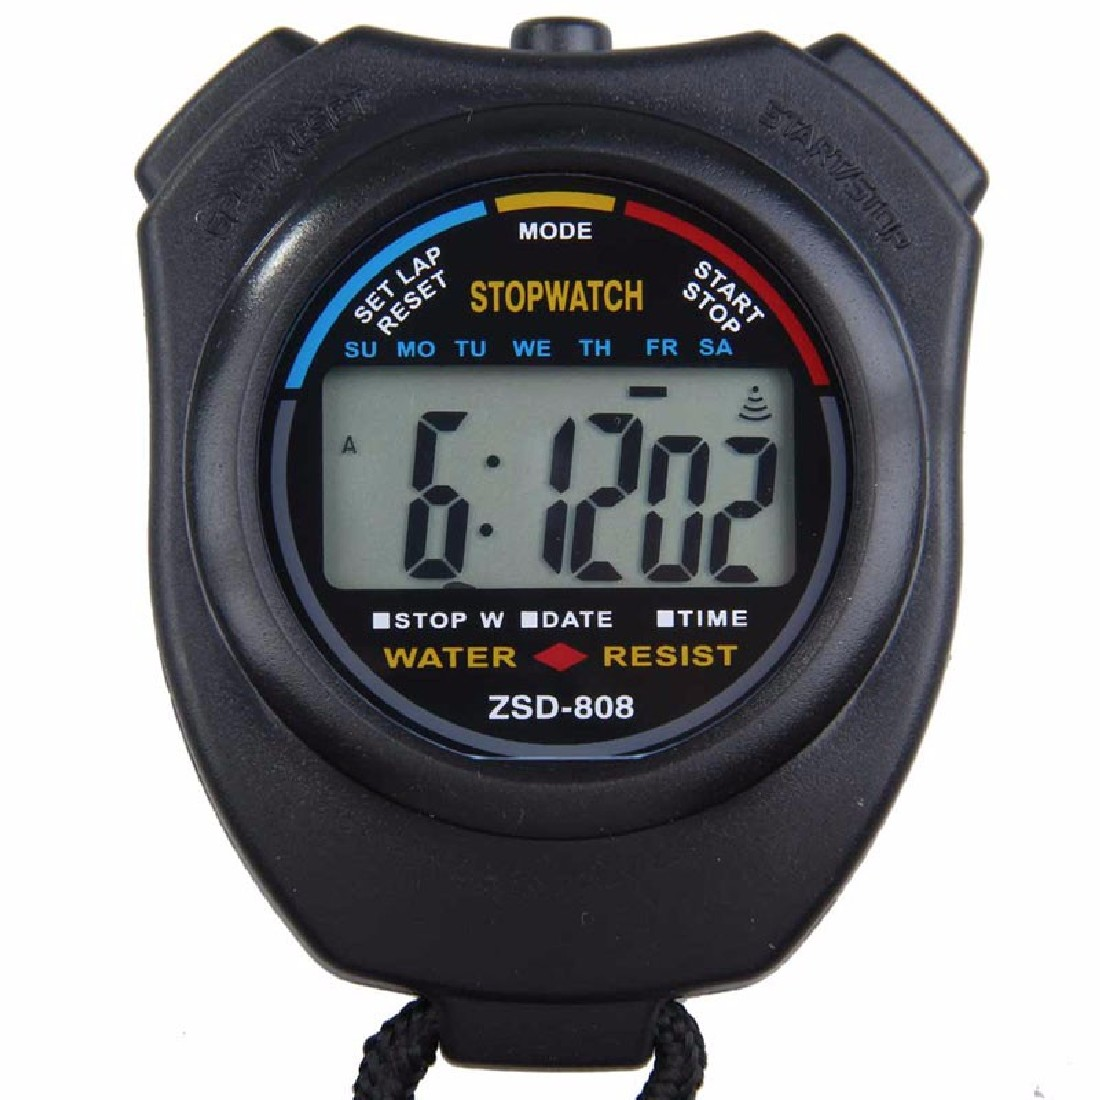 Handheld Sports Stopwatch Timer Professional Digital LCD Sports Stopwatch Chronograph Counter Timers With Strap 2018 fashion digital professional handheld lcd chronograph sports stopwatch stop watch teacher s watches men s relogios f80